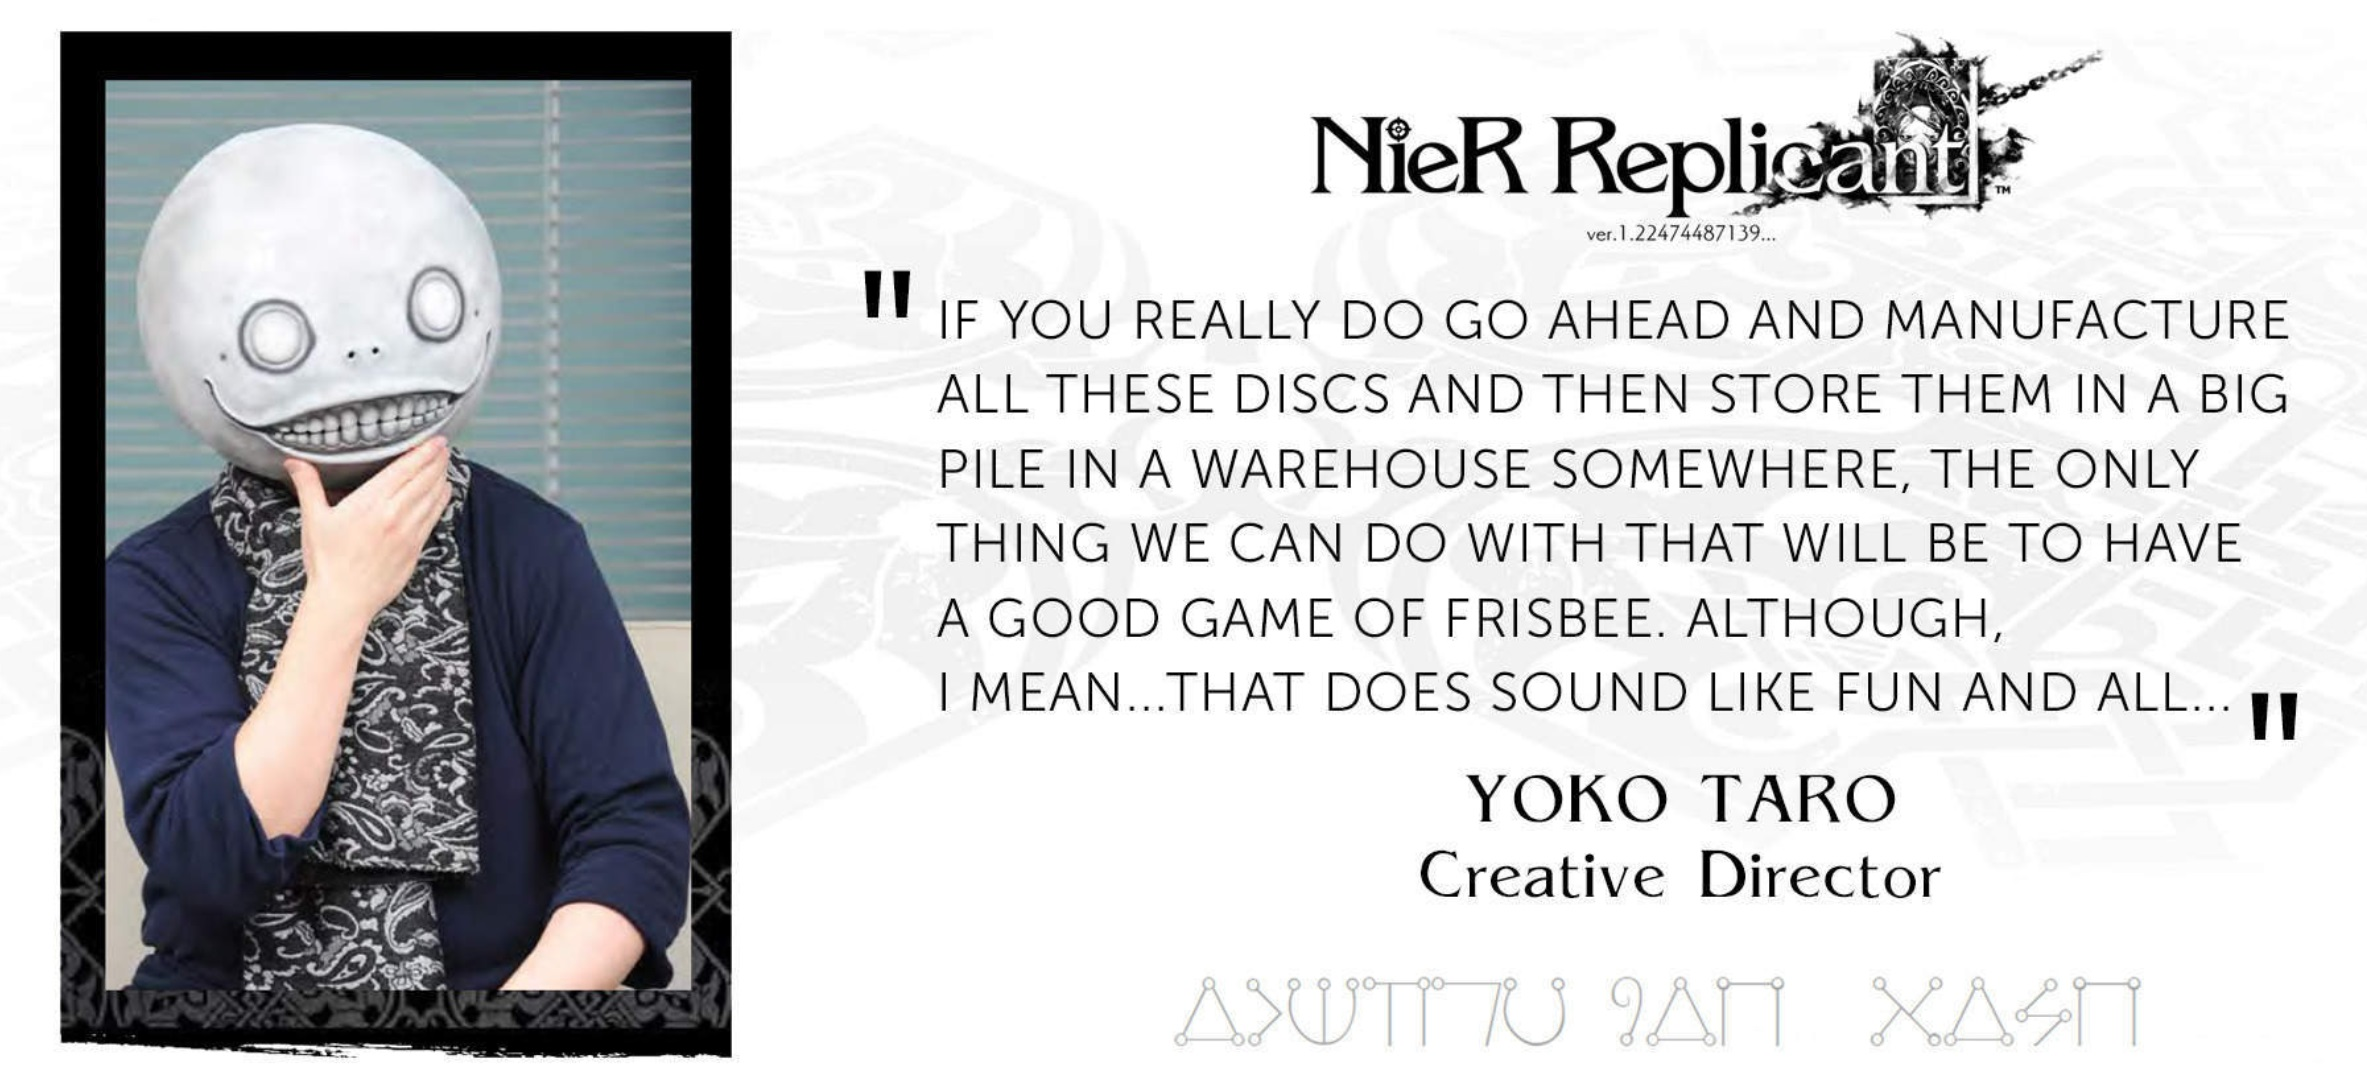 Whether selling copies out of a van or using them as frisbees, Yoko Taro seems to be remaining grounded in his expectations of NieR Replicant ver.122474487139...'s success.